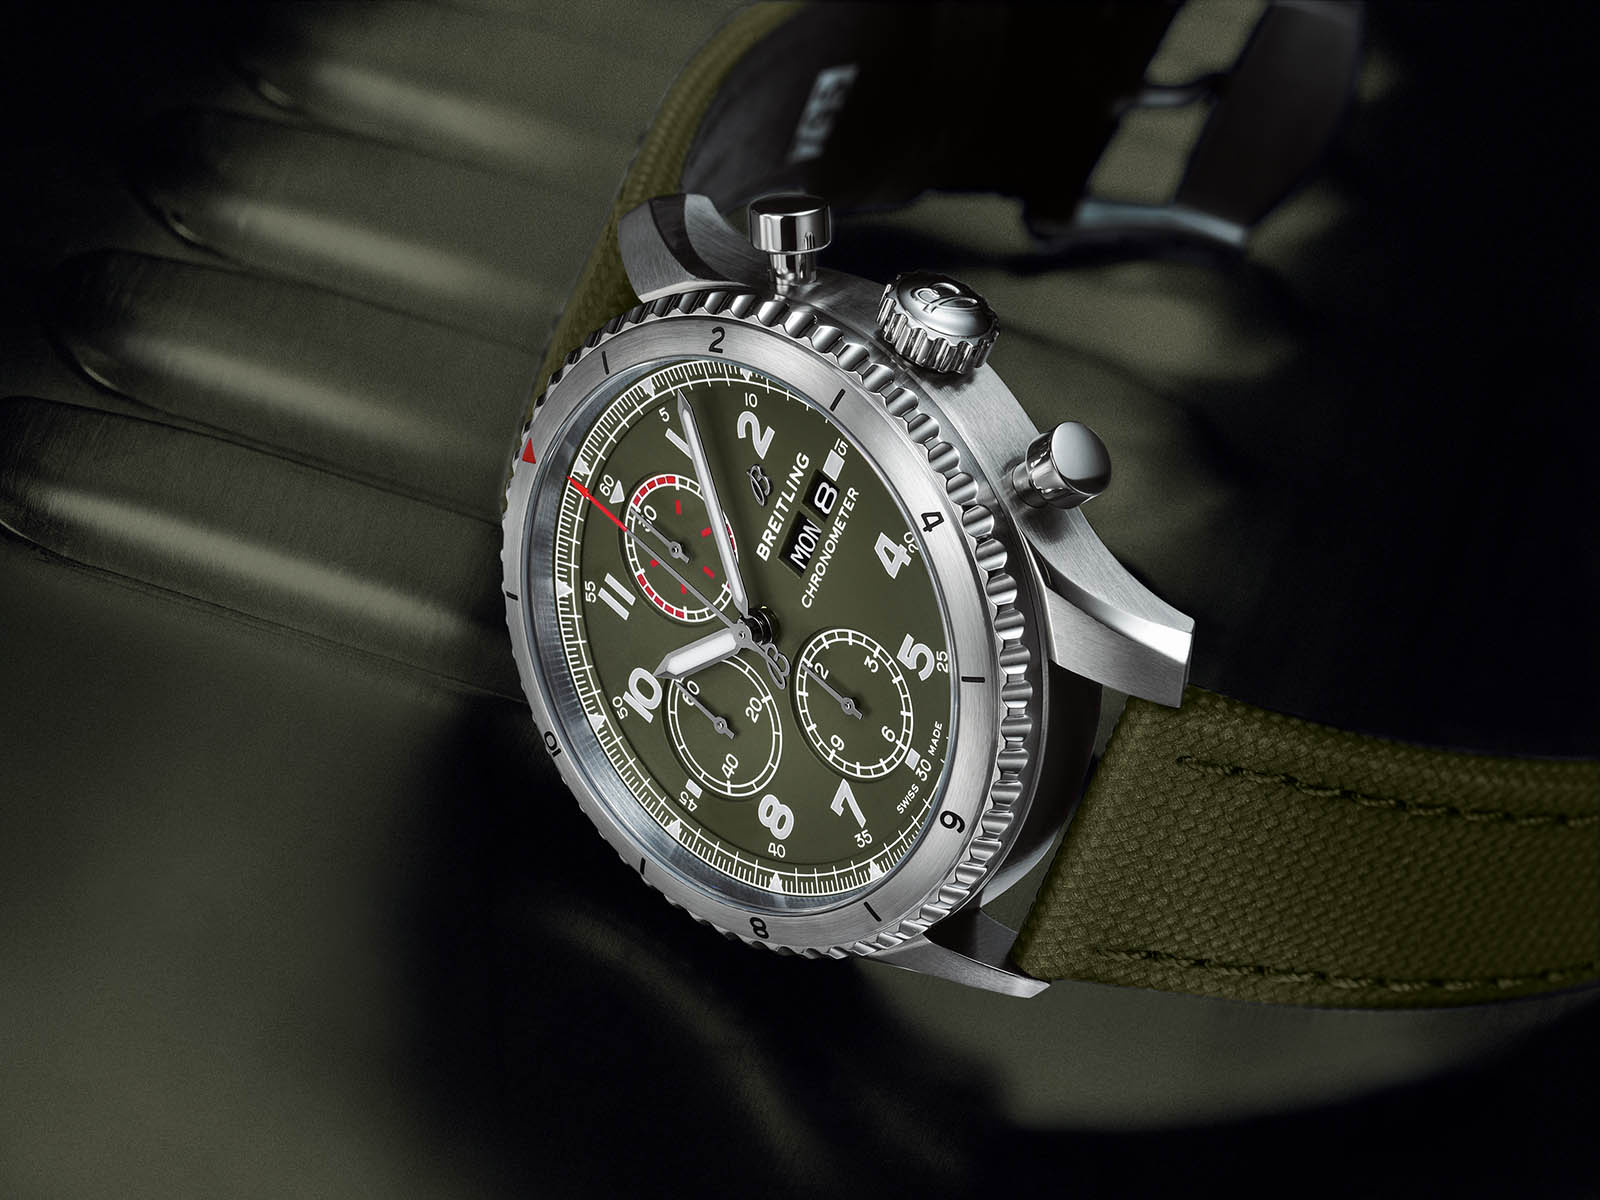 a13316-breitling-aviator-8-chronograph-43-curtiss-warhawk-1.jpg